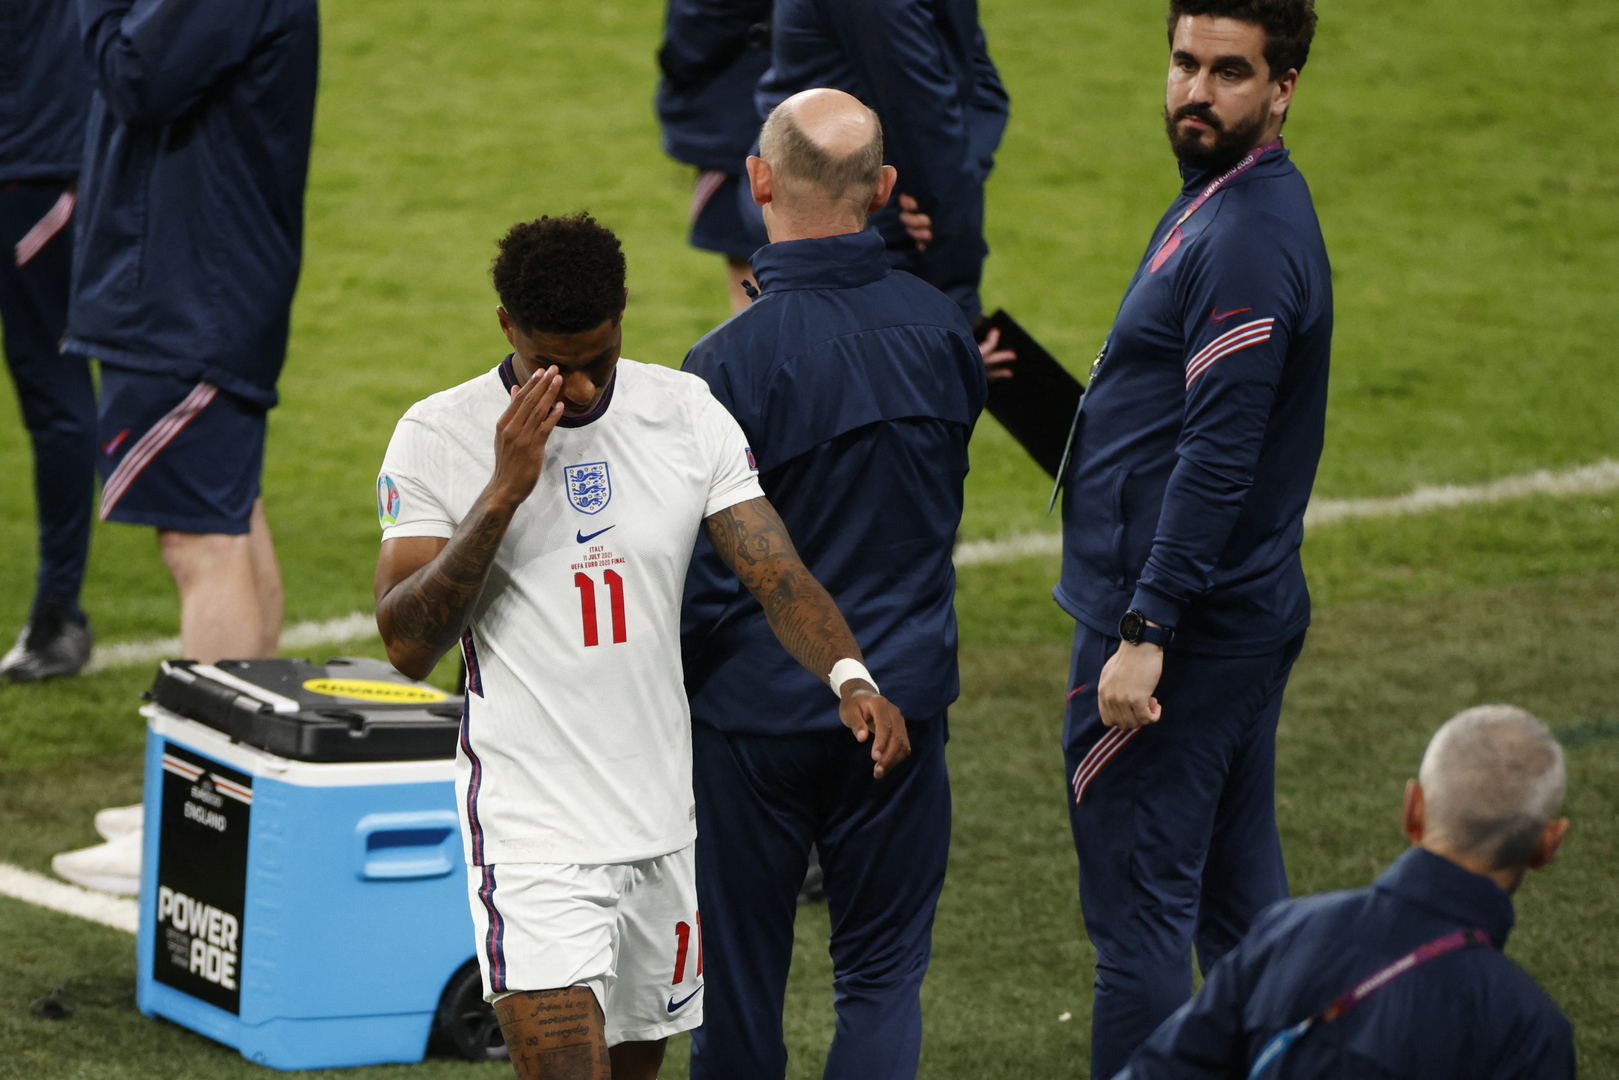 After missing the penalty kick, Rashford faces the risk of being sidelined for 3 months